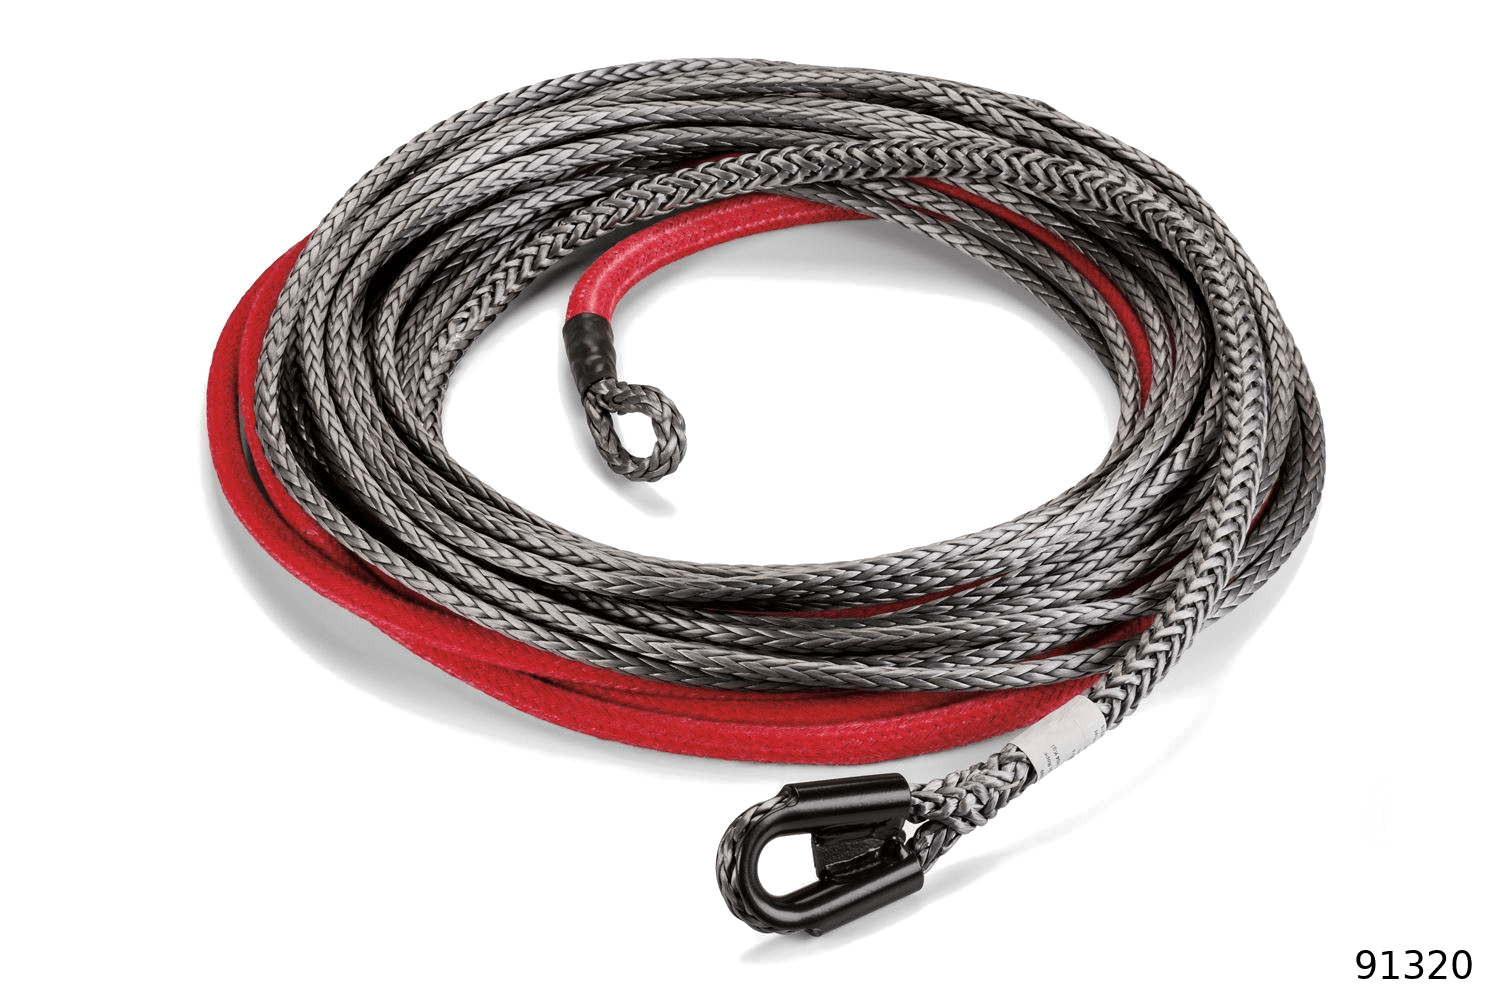 warn industrial rigging accessories spydura pro synthetic rope 93120